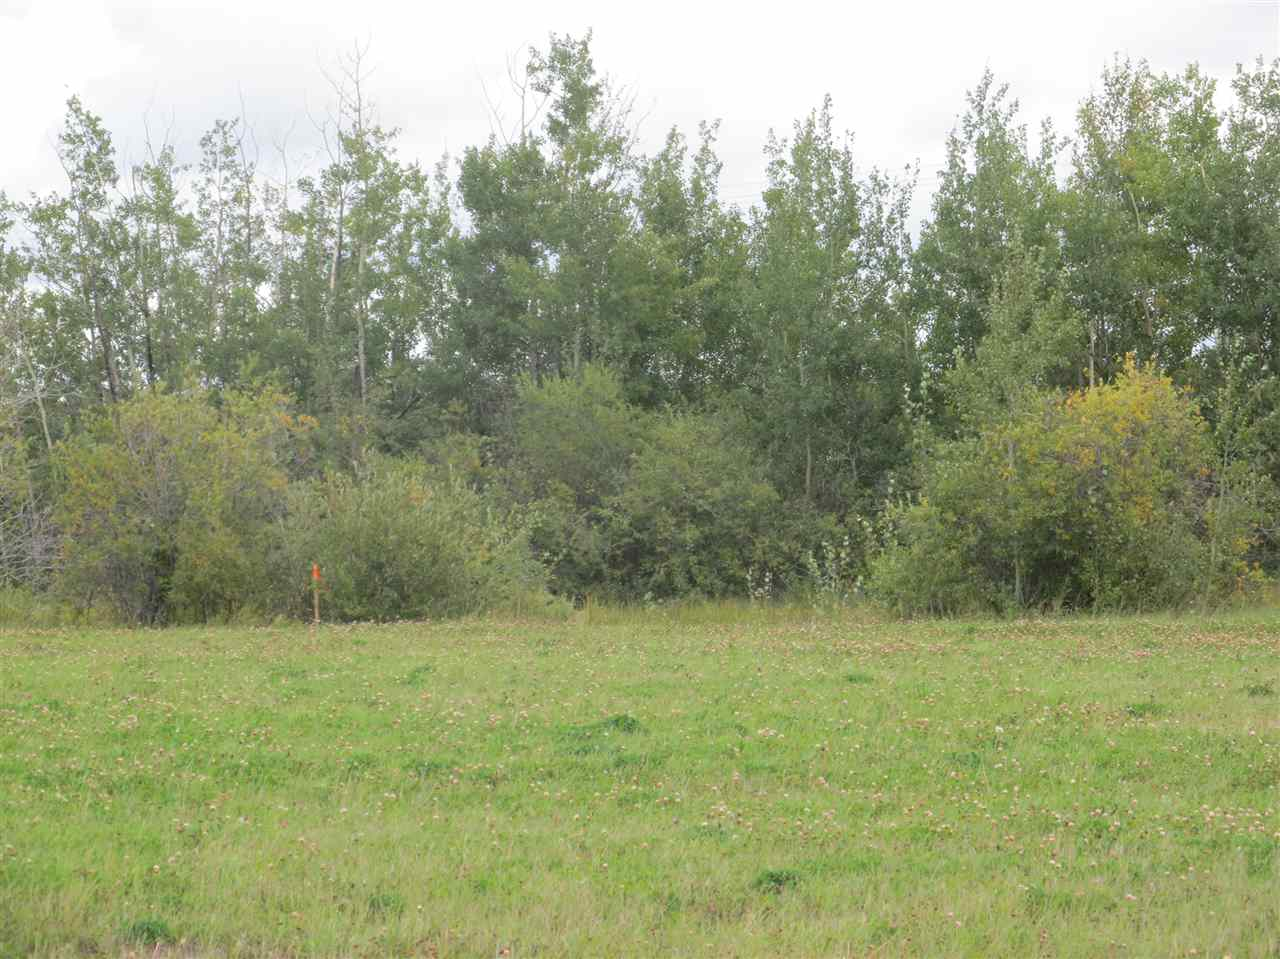 Photo 6: 59512 RR 255: Rural Westlock County Rural Land/Vacant Lot for sale : MLS(r) # E4037975